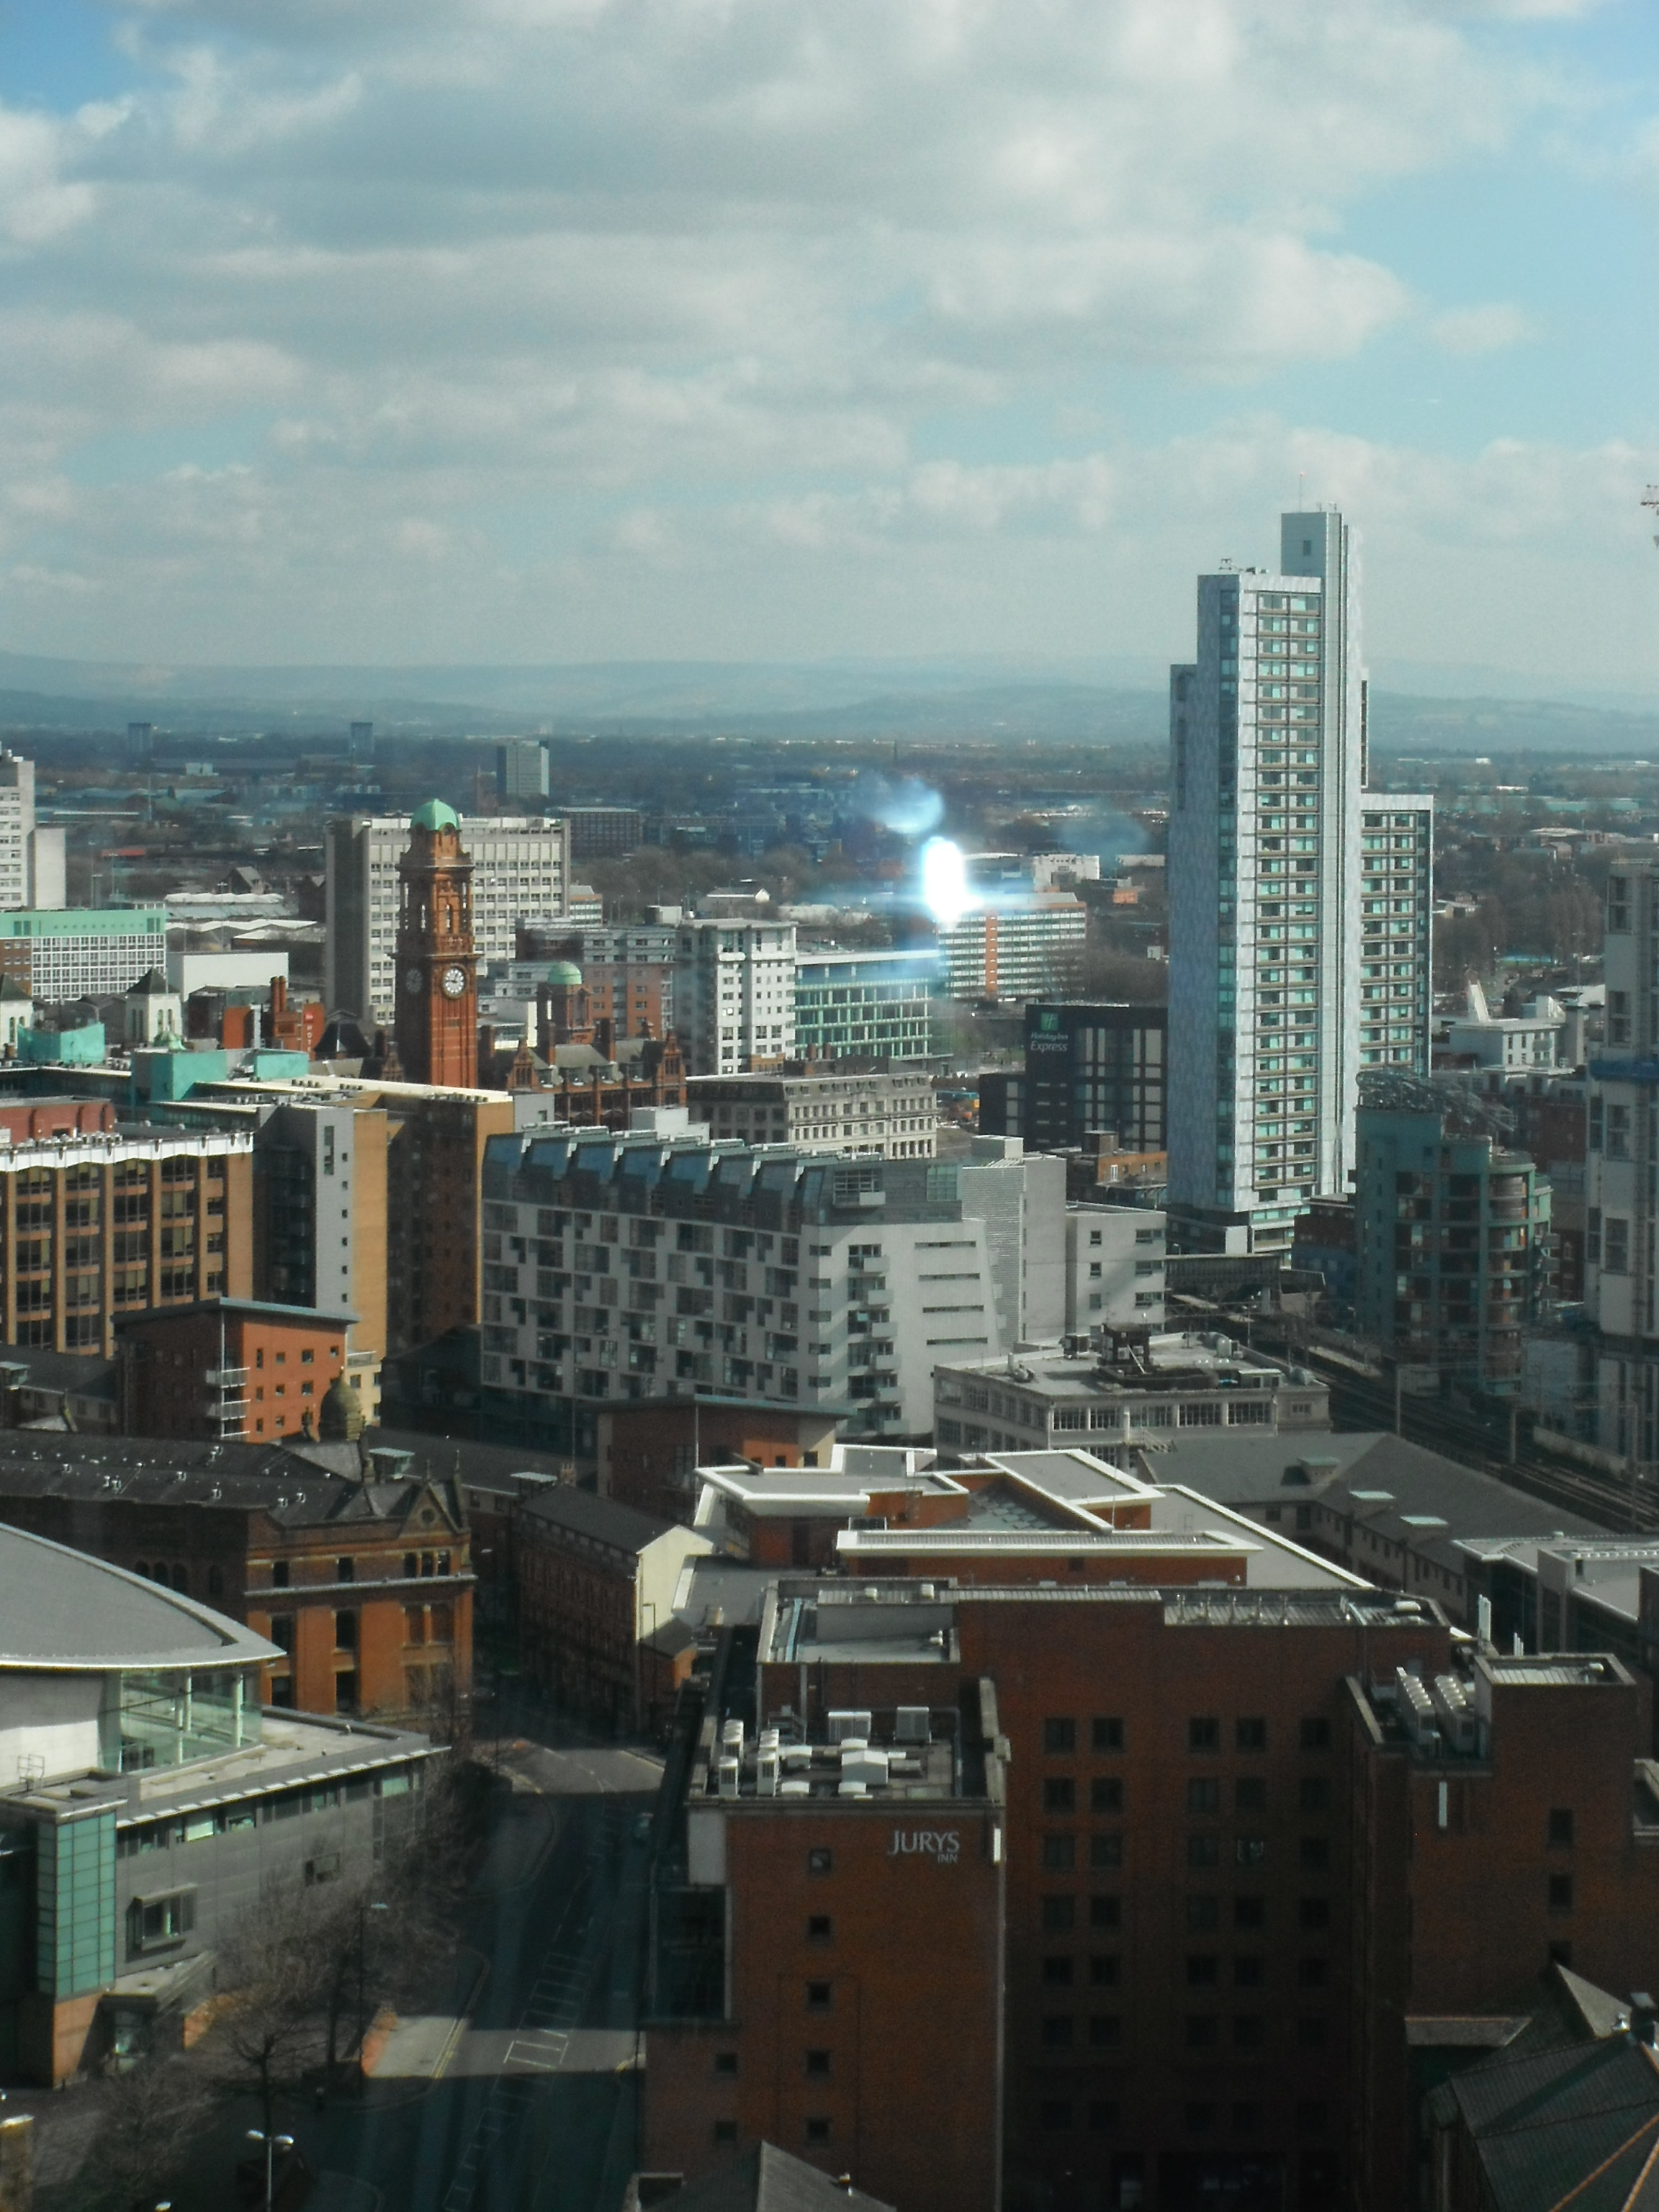 Photo taken by me – Manchester viewed from The Beetham Hotel